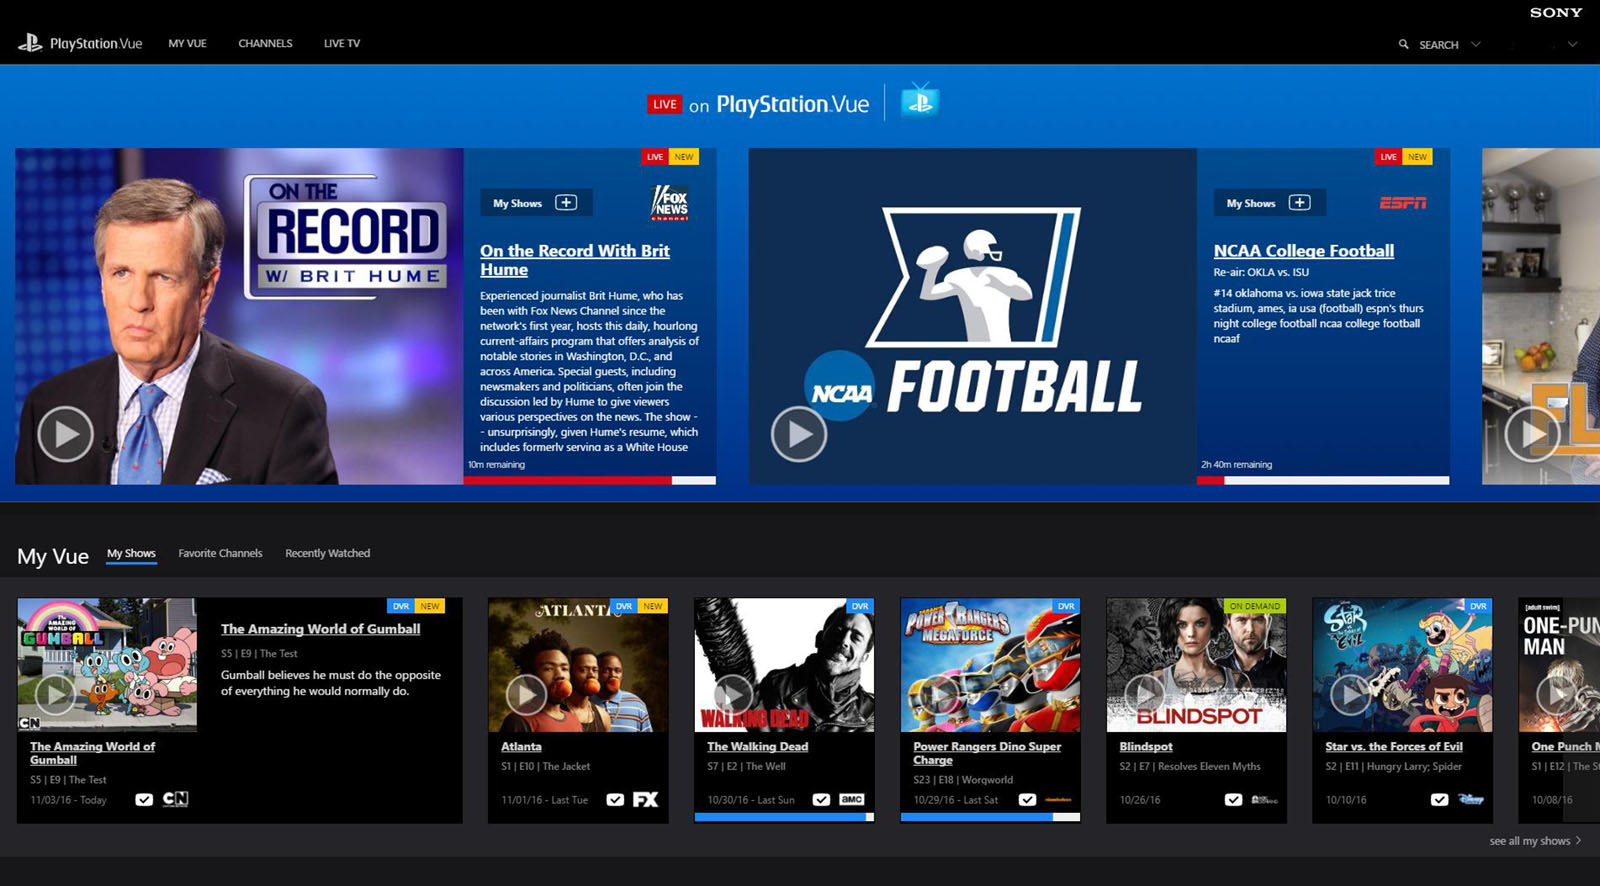 Sony's PlayStation TV service comes to Mac and PC browsers